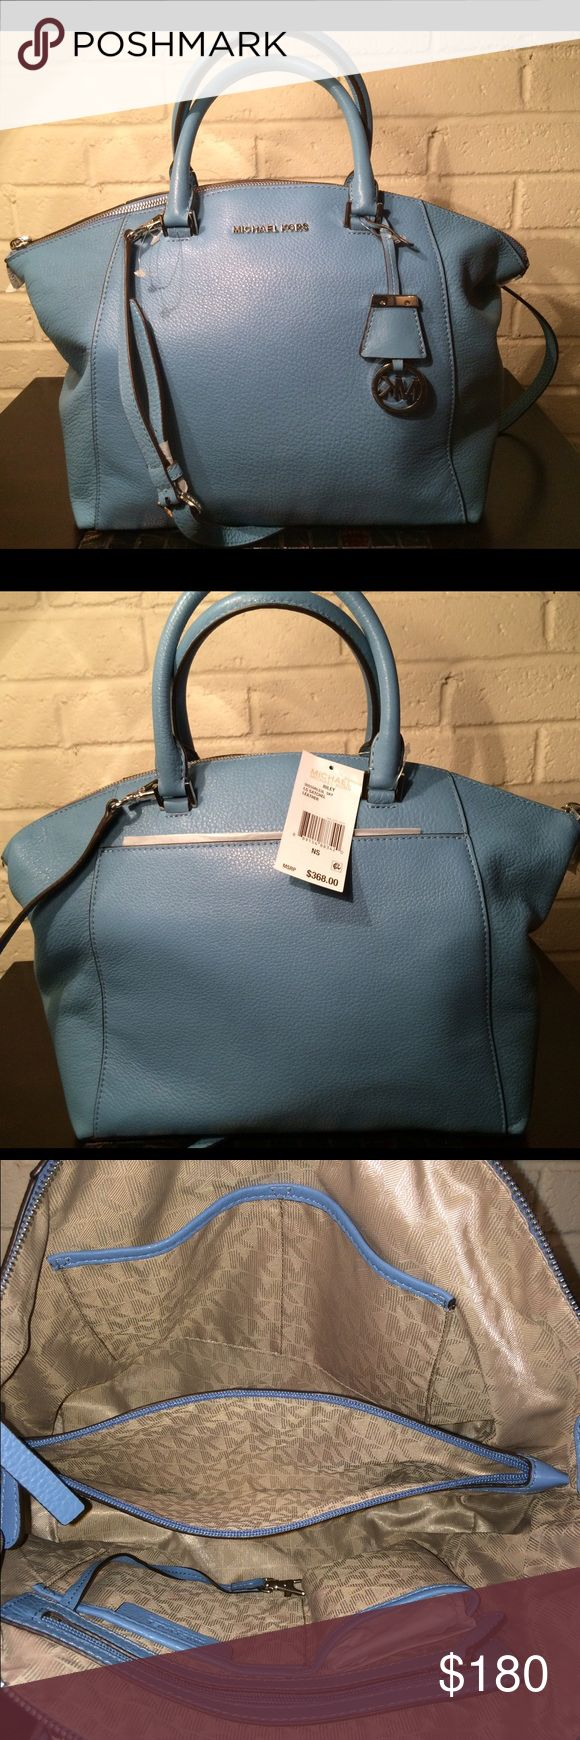 Michael Kors large sky blue Riley satchel tote My prices are lower throughⓂ️ercari and through ️️ Bags are 100% authentic and brand new with tags guaranteed!! Michael Kors sky blue Riley satchel. Stored in pet free and smoke free home. Serious buyers only please and only comment if it's about purchasing. I will not respond to lowball offers.  customers know my background. Thank you   Measurements large 16 x 6 x 13 Michael Kors Bags